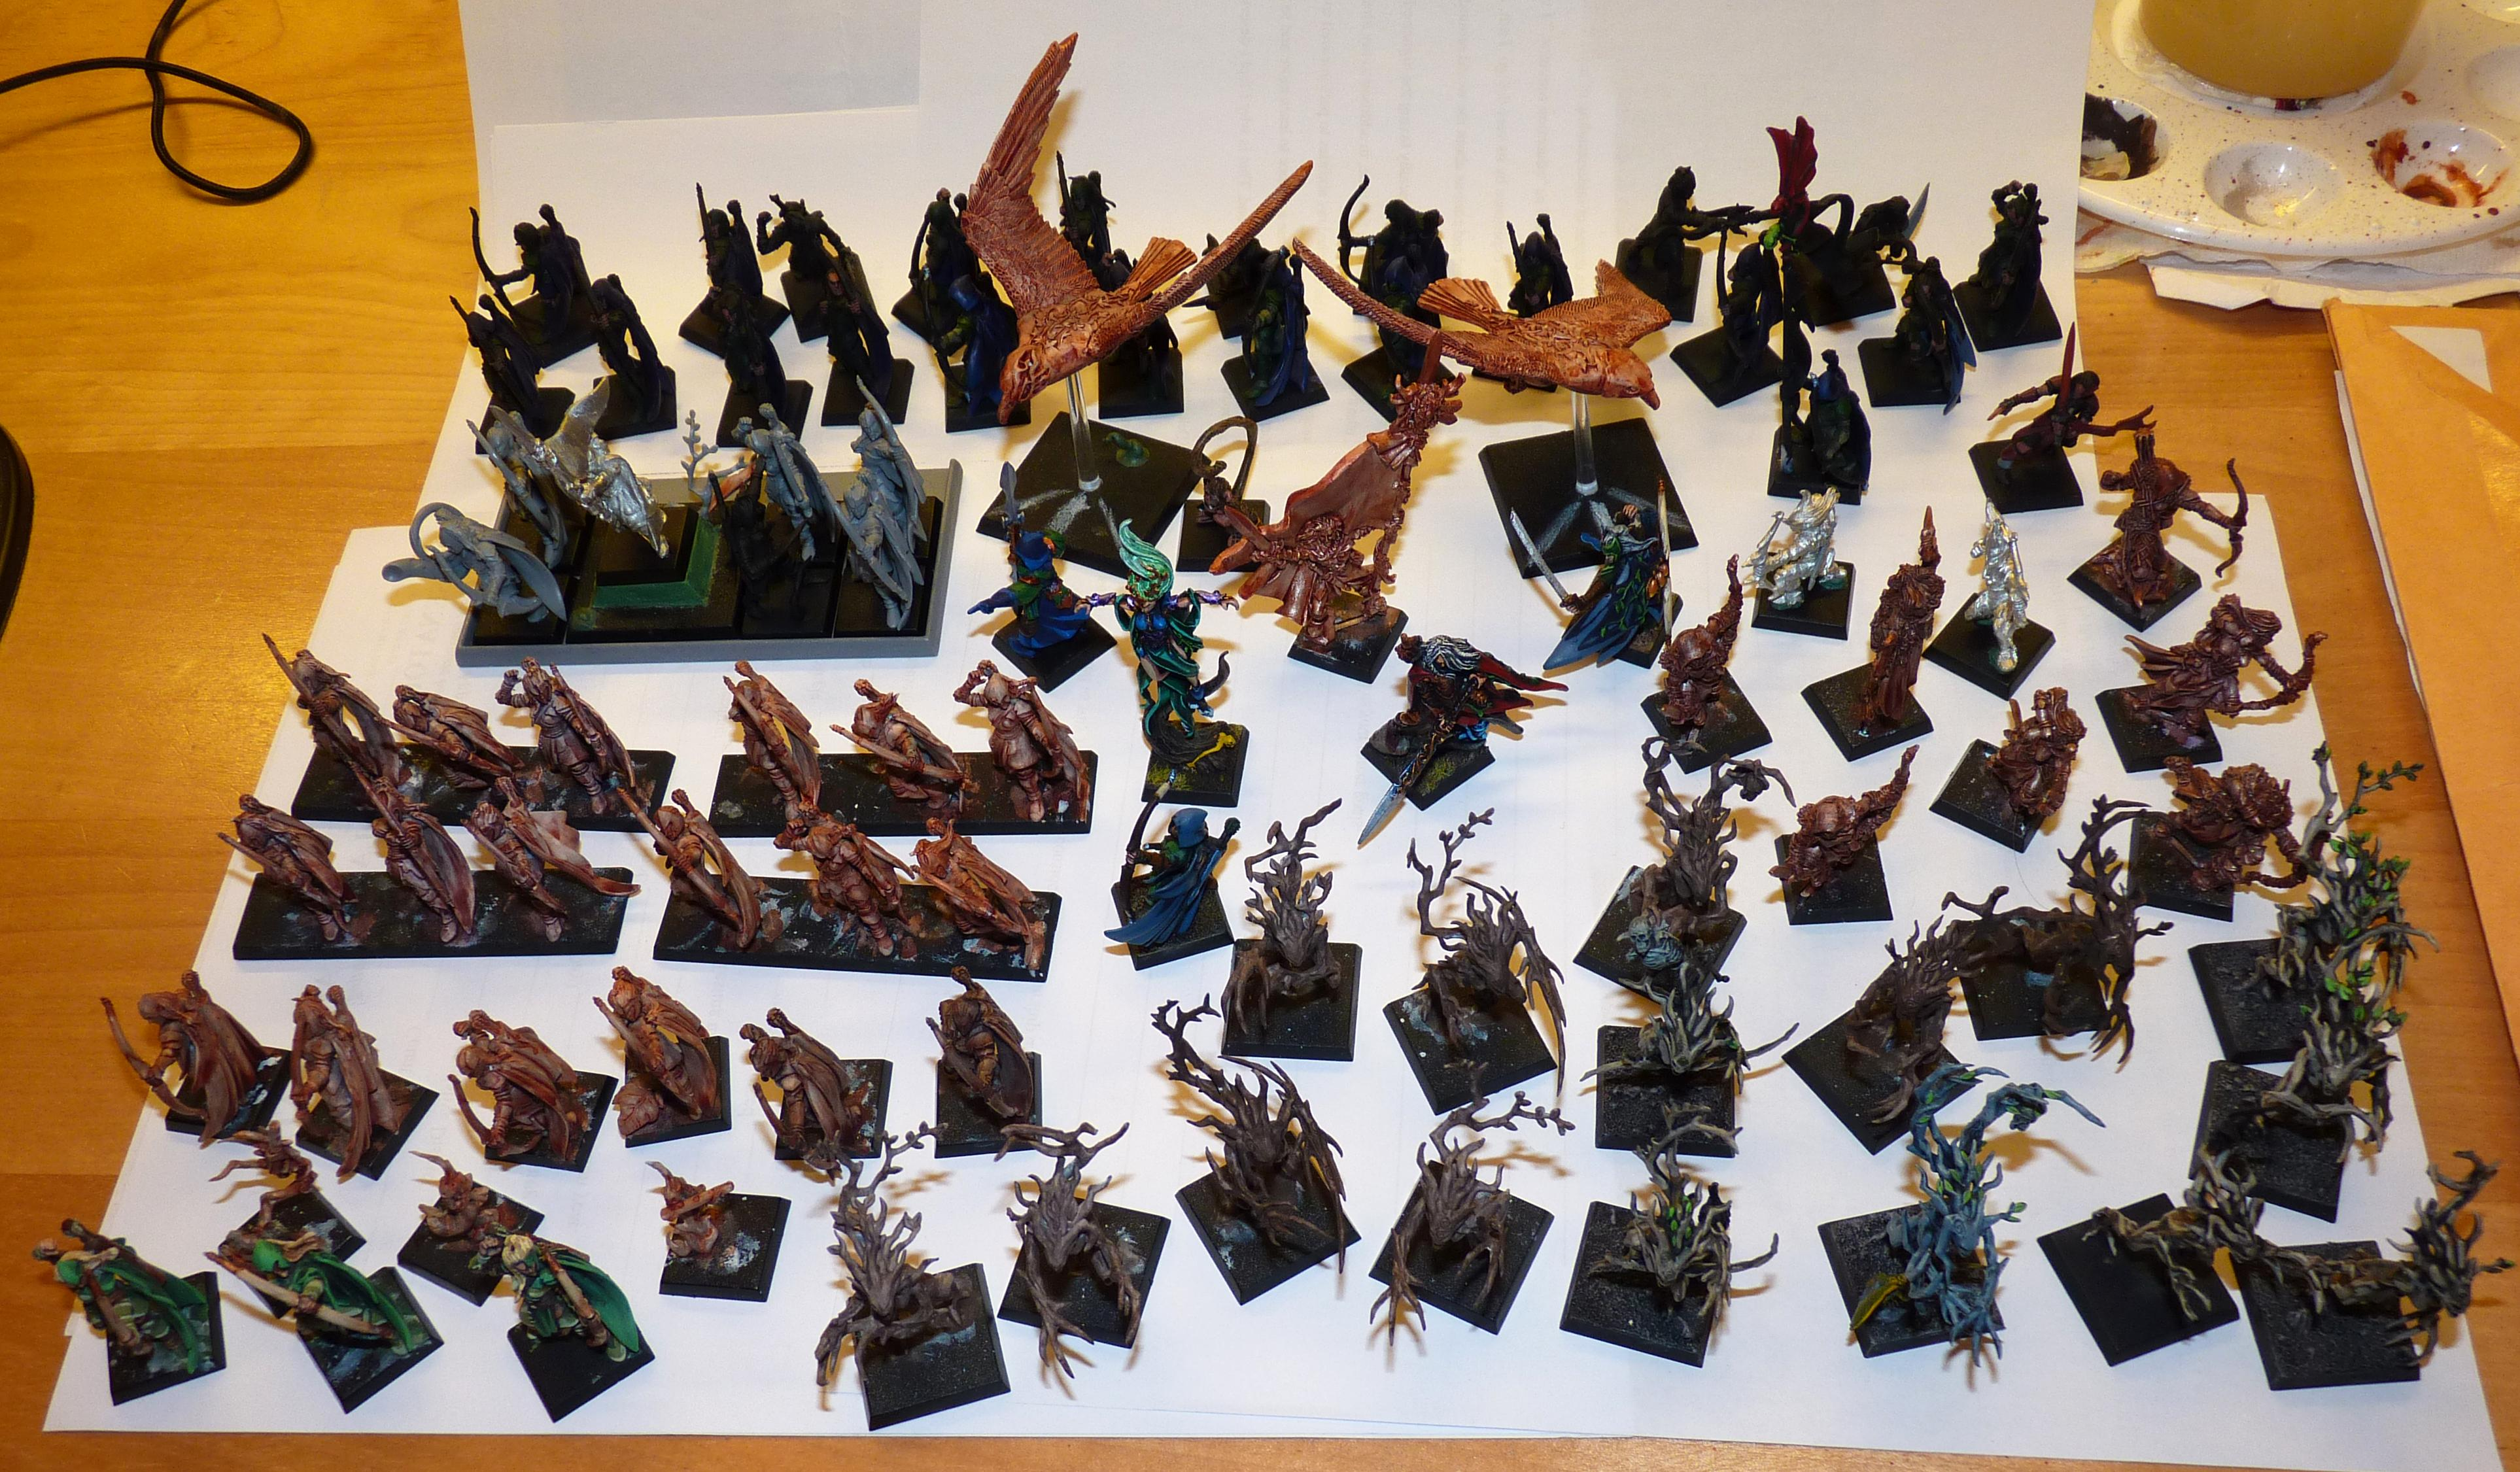 Asrai, Elves, Wfb, Wood